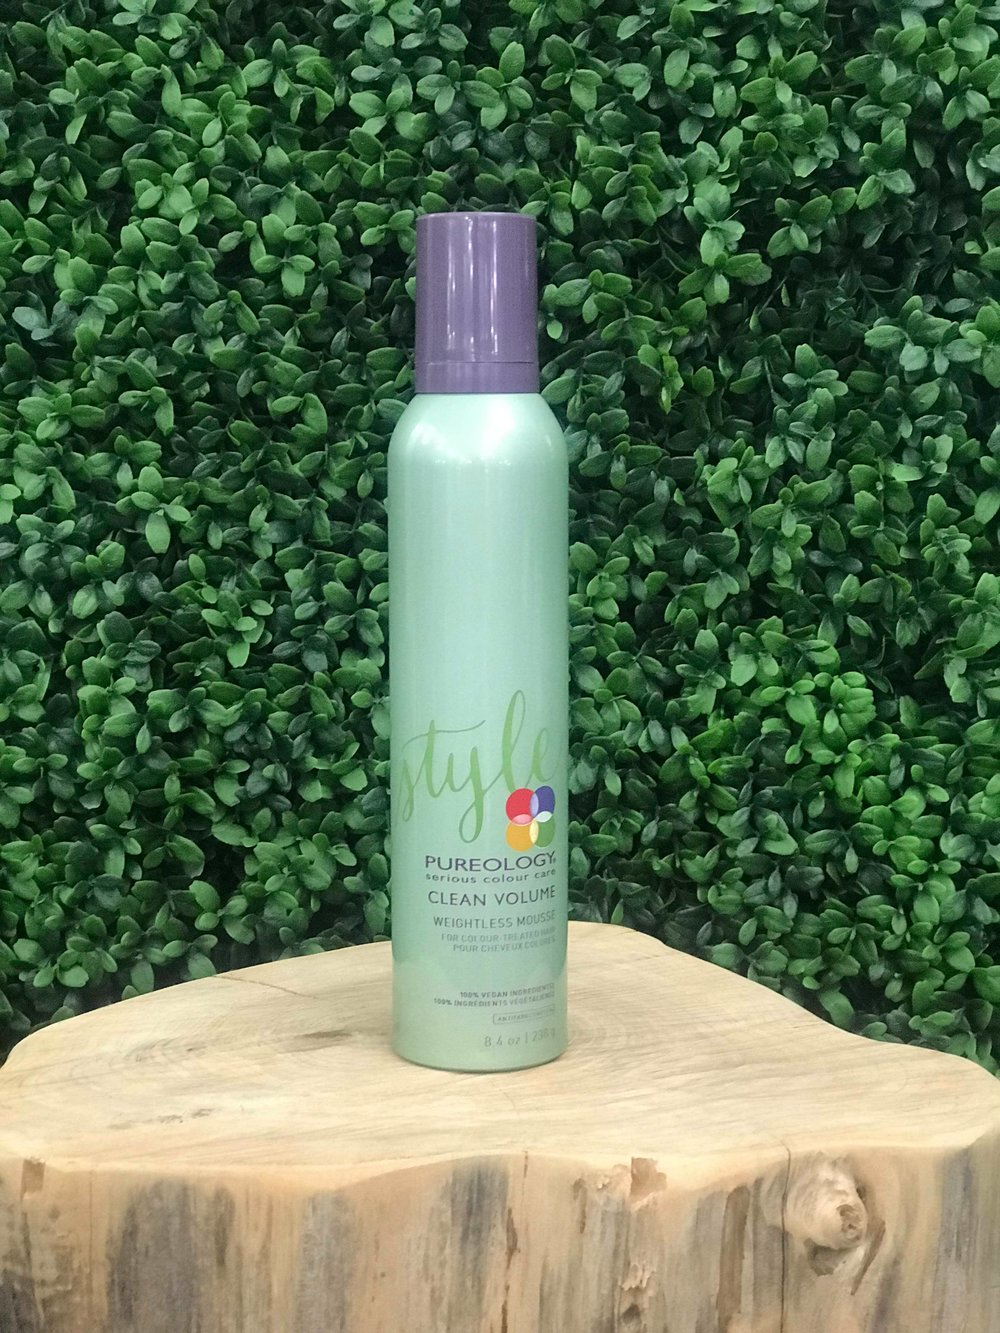 Clean Volume Weightless Mousse 238ml - $44.00